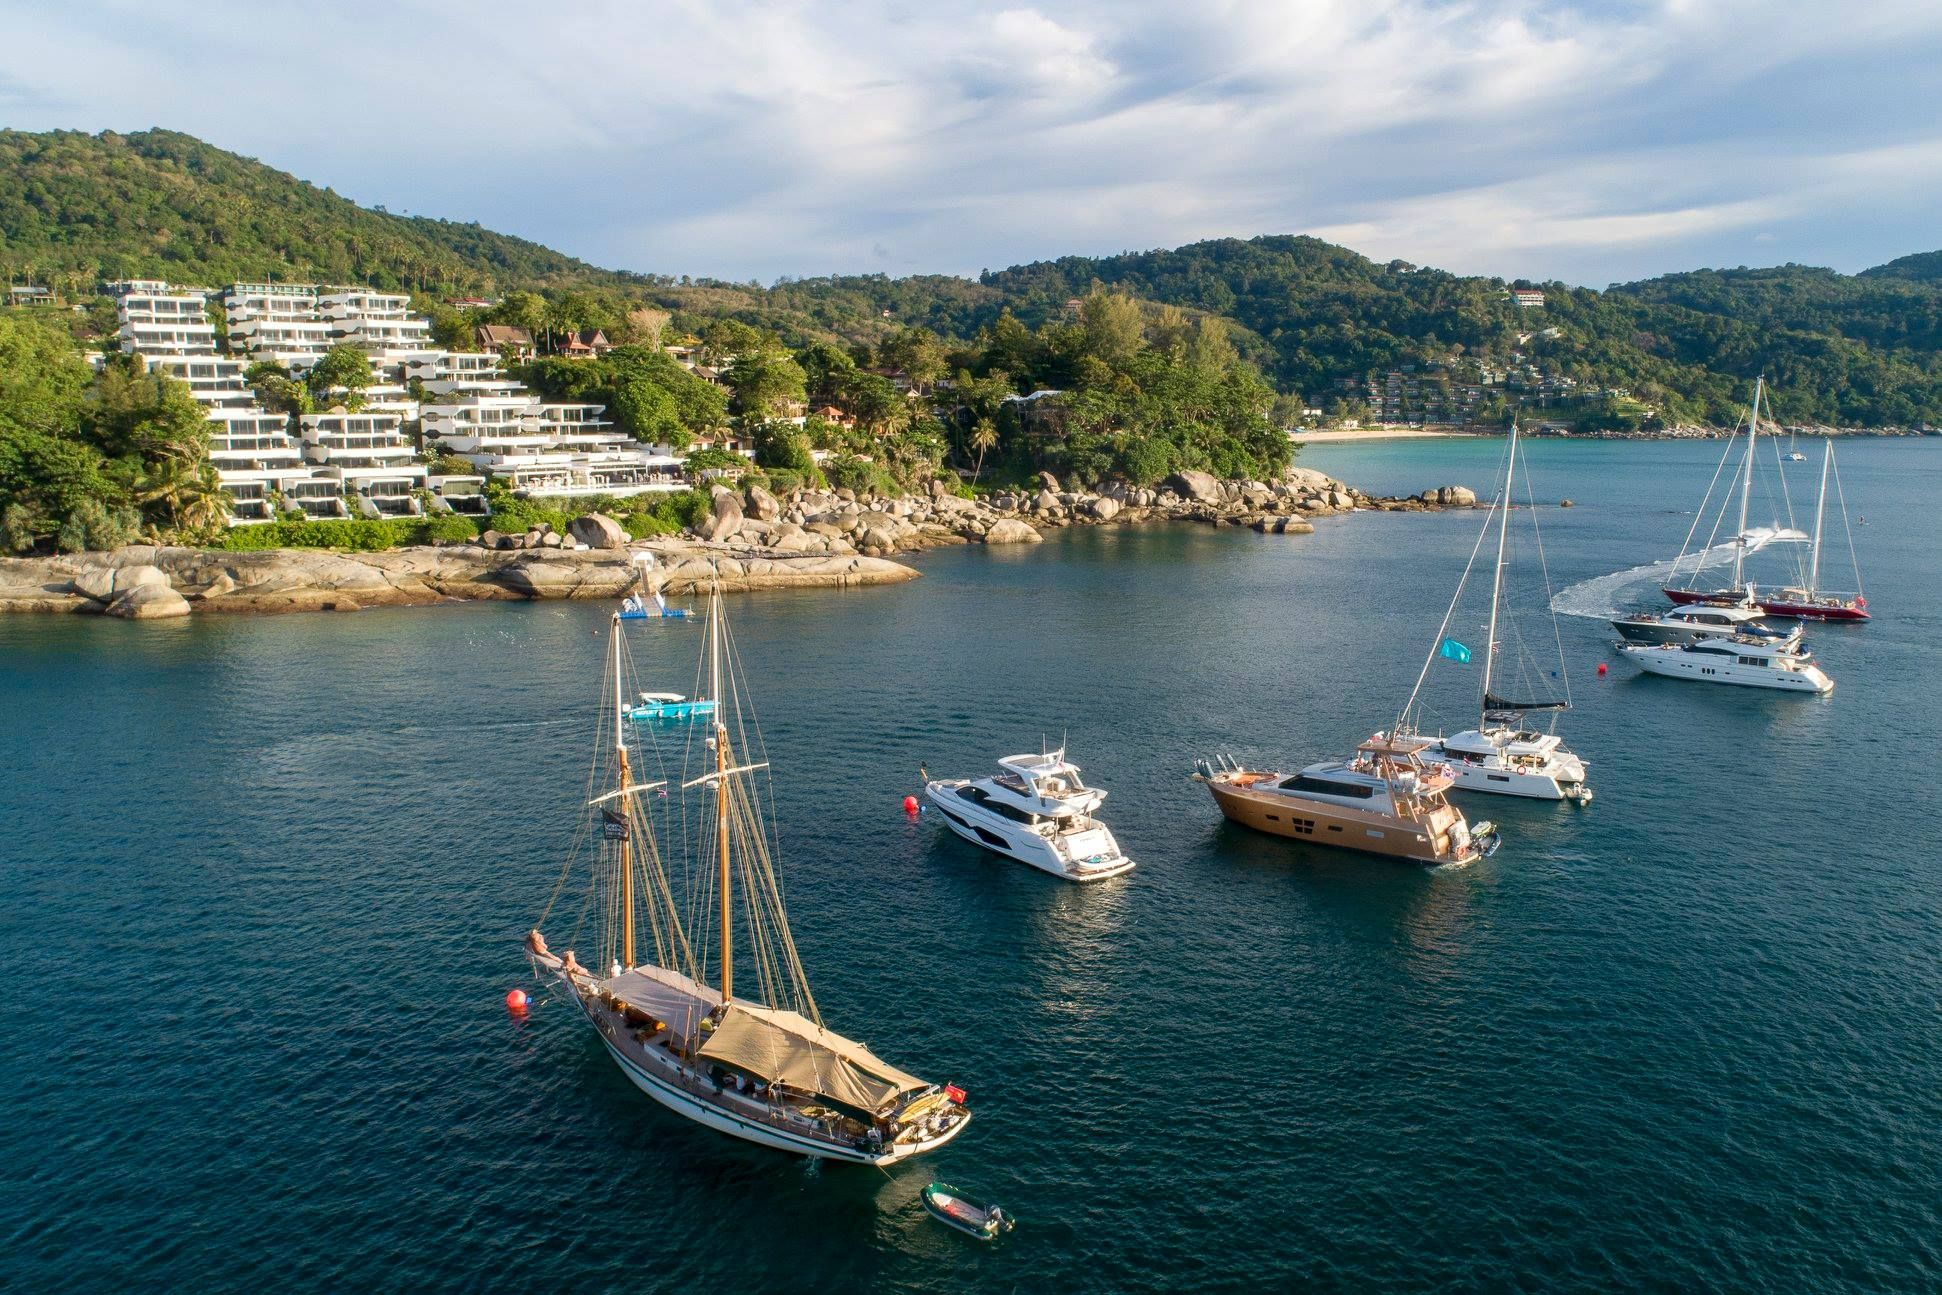 Kata Rocks Superyacht Rendezvous 2019: A Must-Attend Superyacht Event In Asia